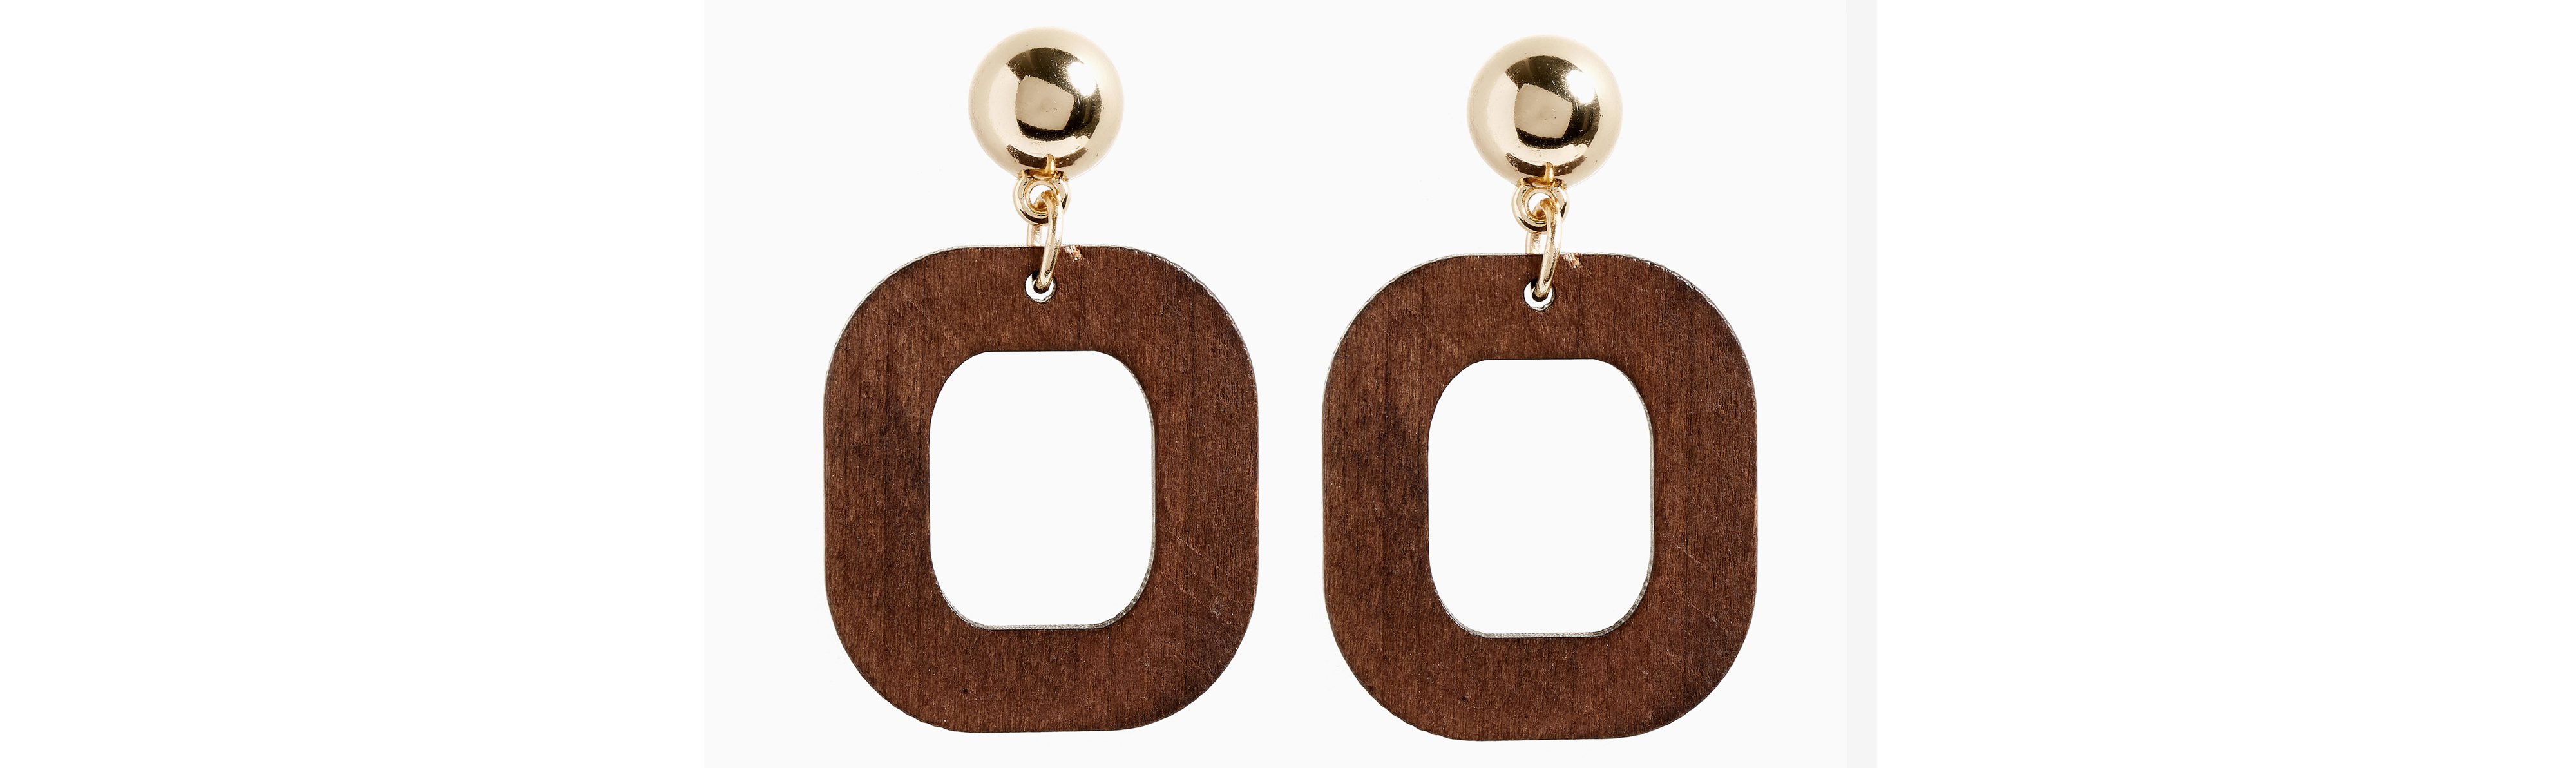 Next Gold Tone Geometric Wood Effect Drop Earrings